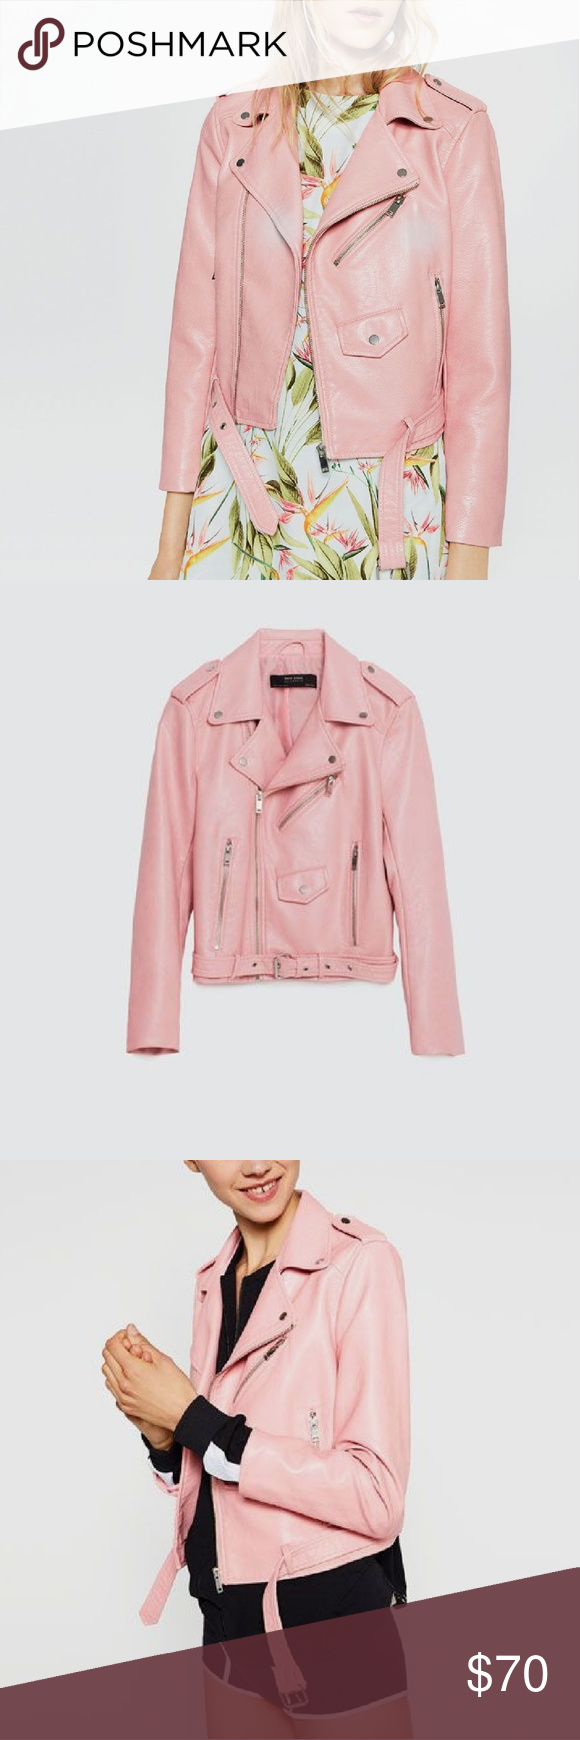 1 Day SALE 🌸 Pink Leather Zara Jacket (With images